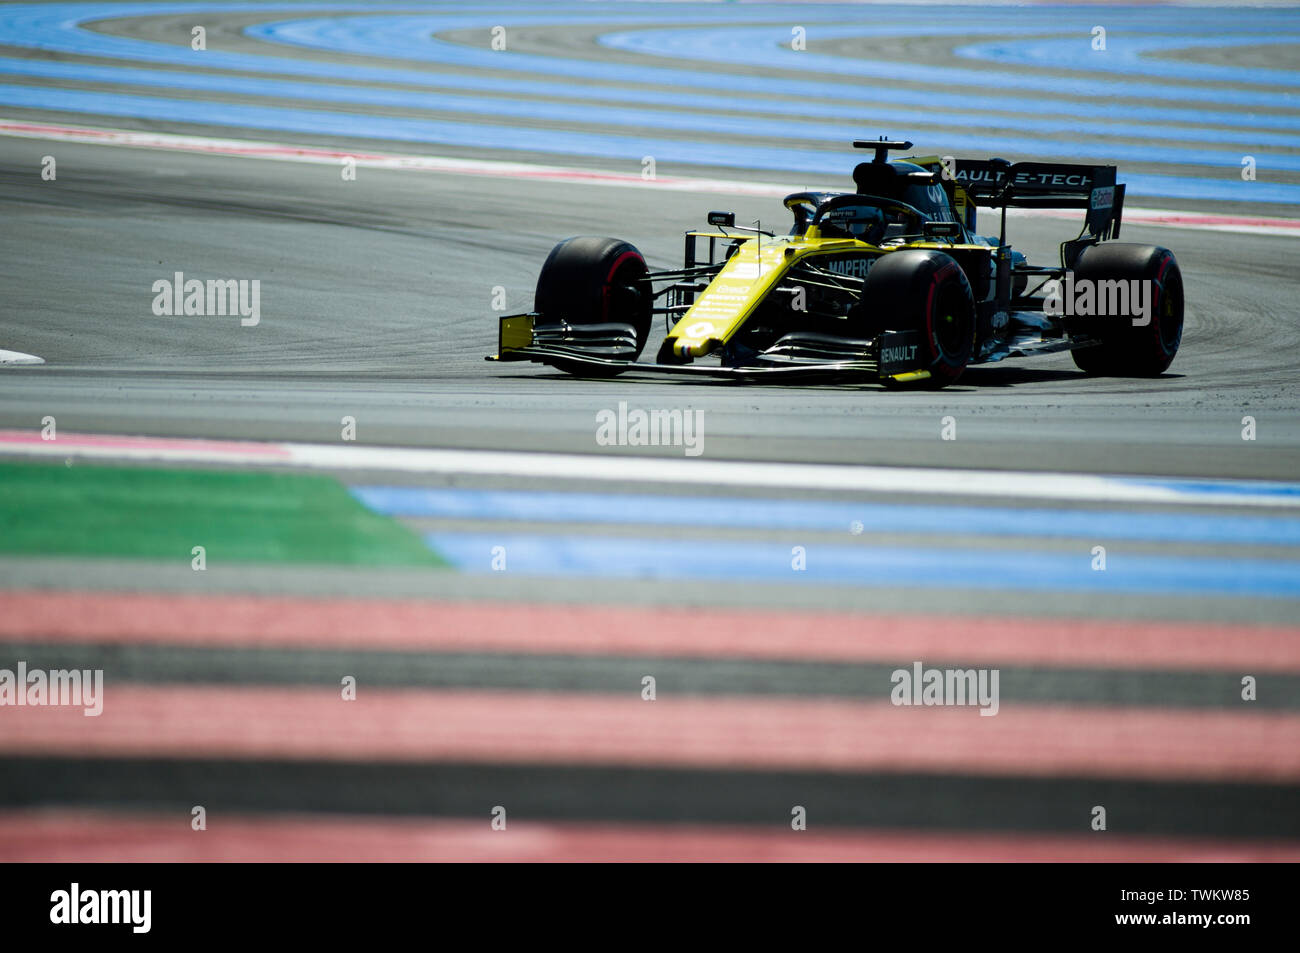 Marseille, France. 21st June 2019, Circuit Automobile Paul Ricard, Le Castellet, Marseille, France ; FIA Formula 1 Grand Prix of France, practise sessions; Daniel Ricciardo of the Renault Team in action during free practice 1 Credit: Action Plus Sports Images/Alamy Live News Stock Photo